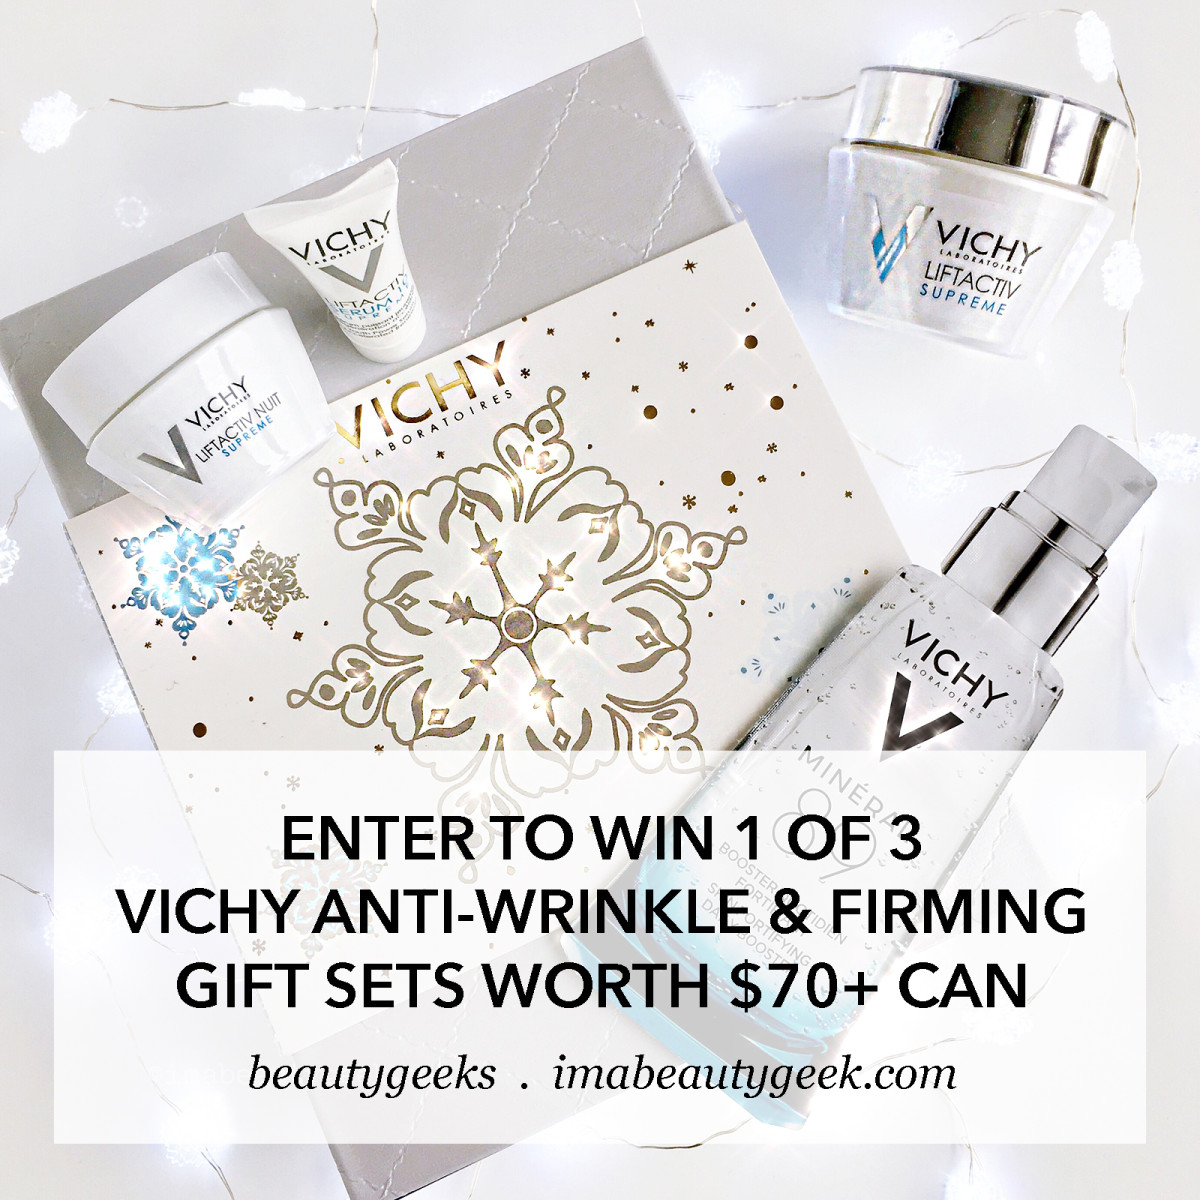 Win 1 of 3 Vichy Skincare Gift Sets worth $70+ CAD-BEAUTYGEEKS